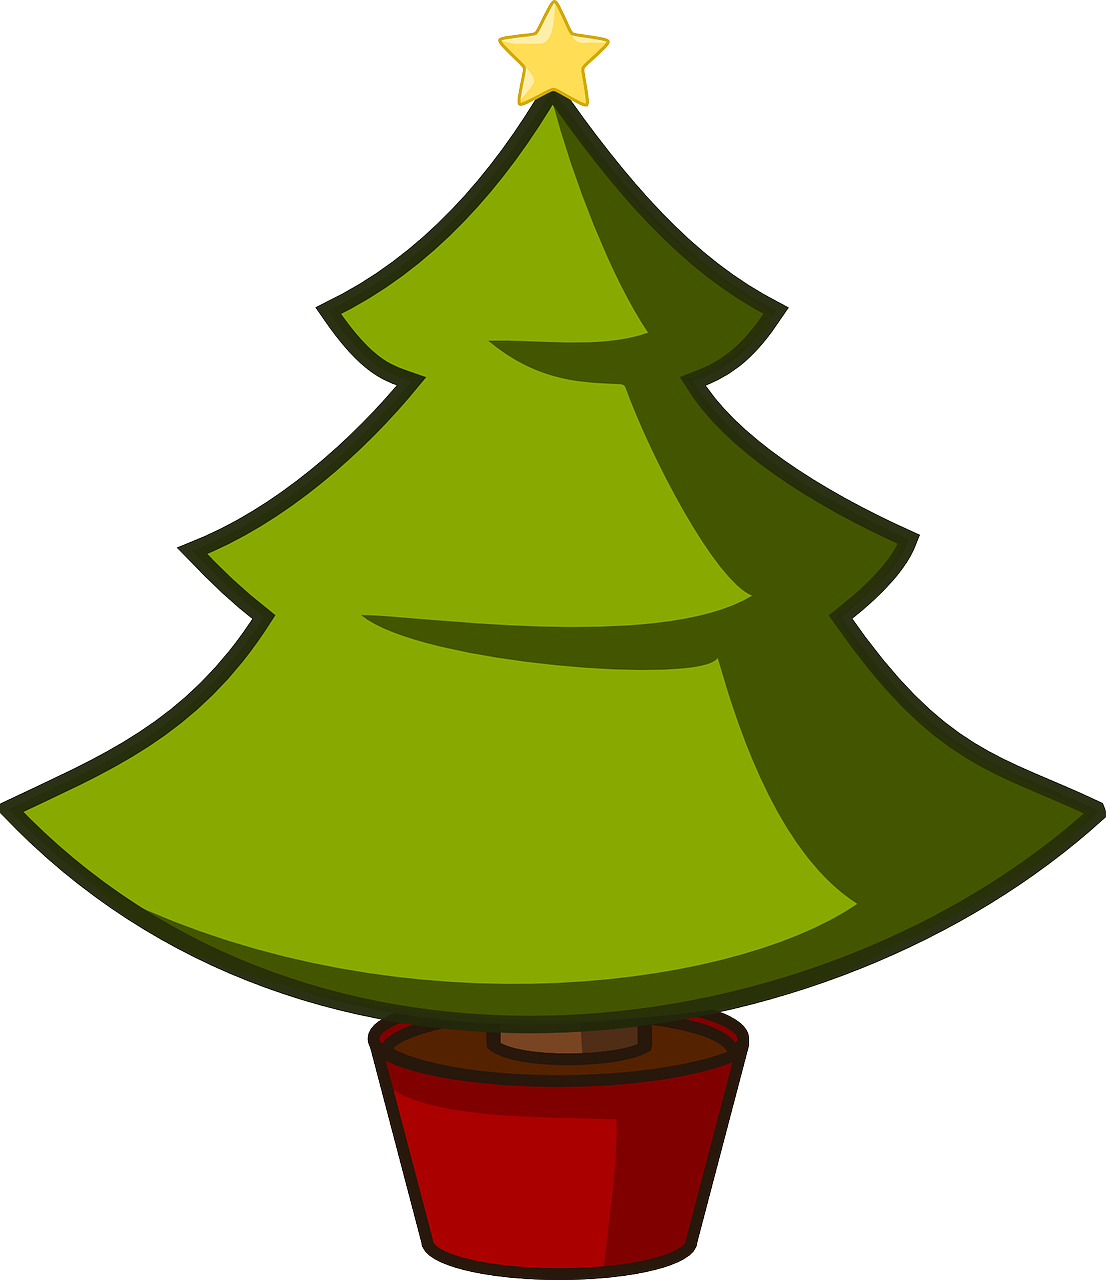 how to draw a Christmas tree 2